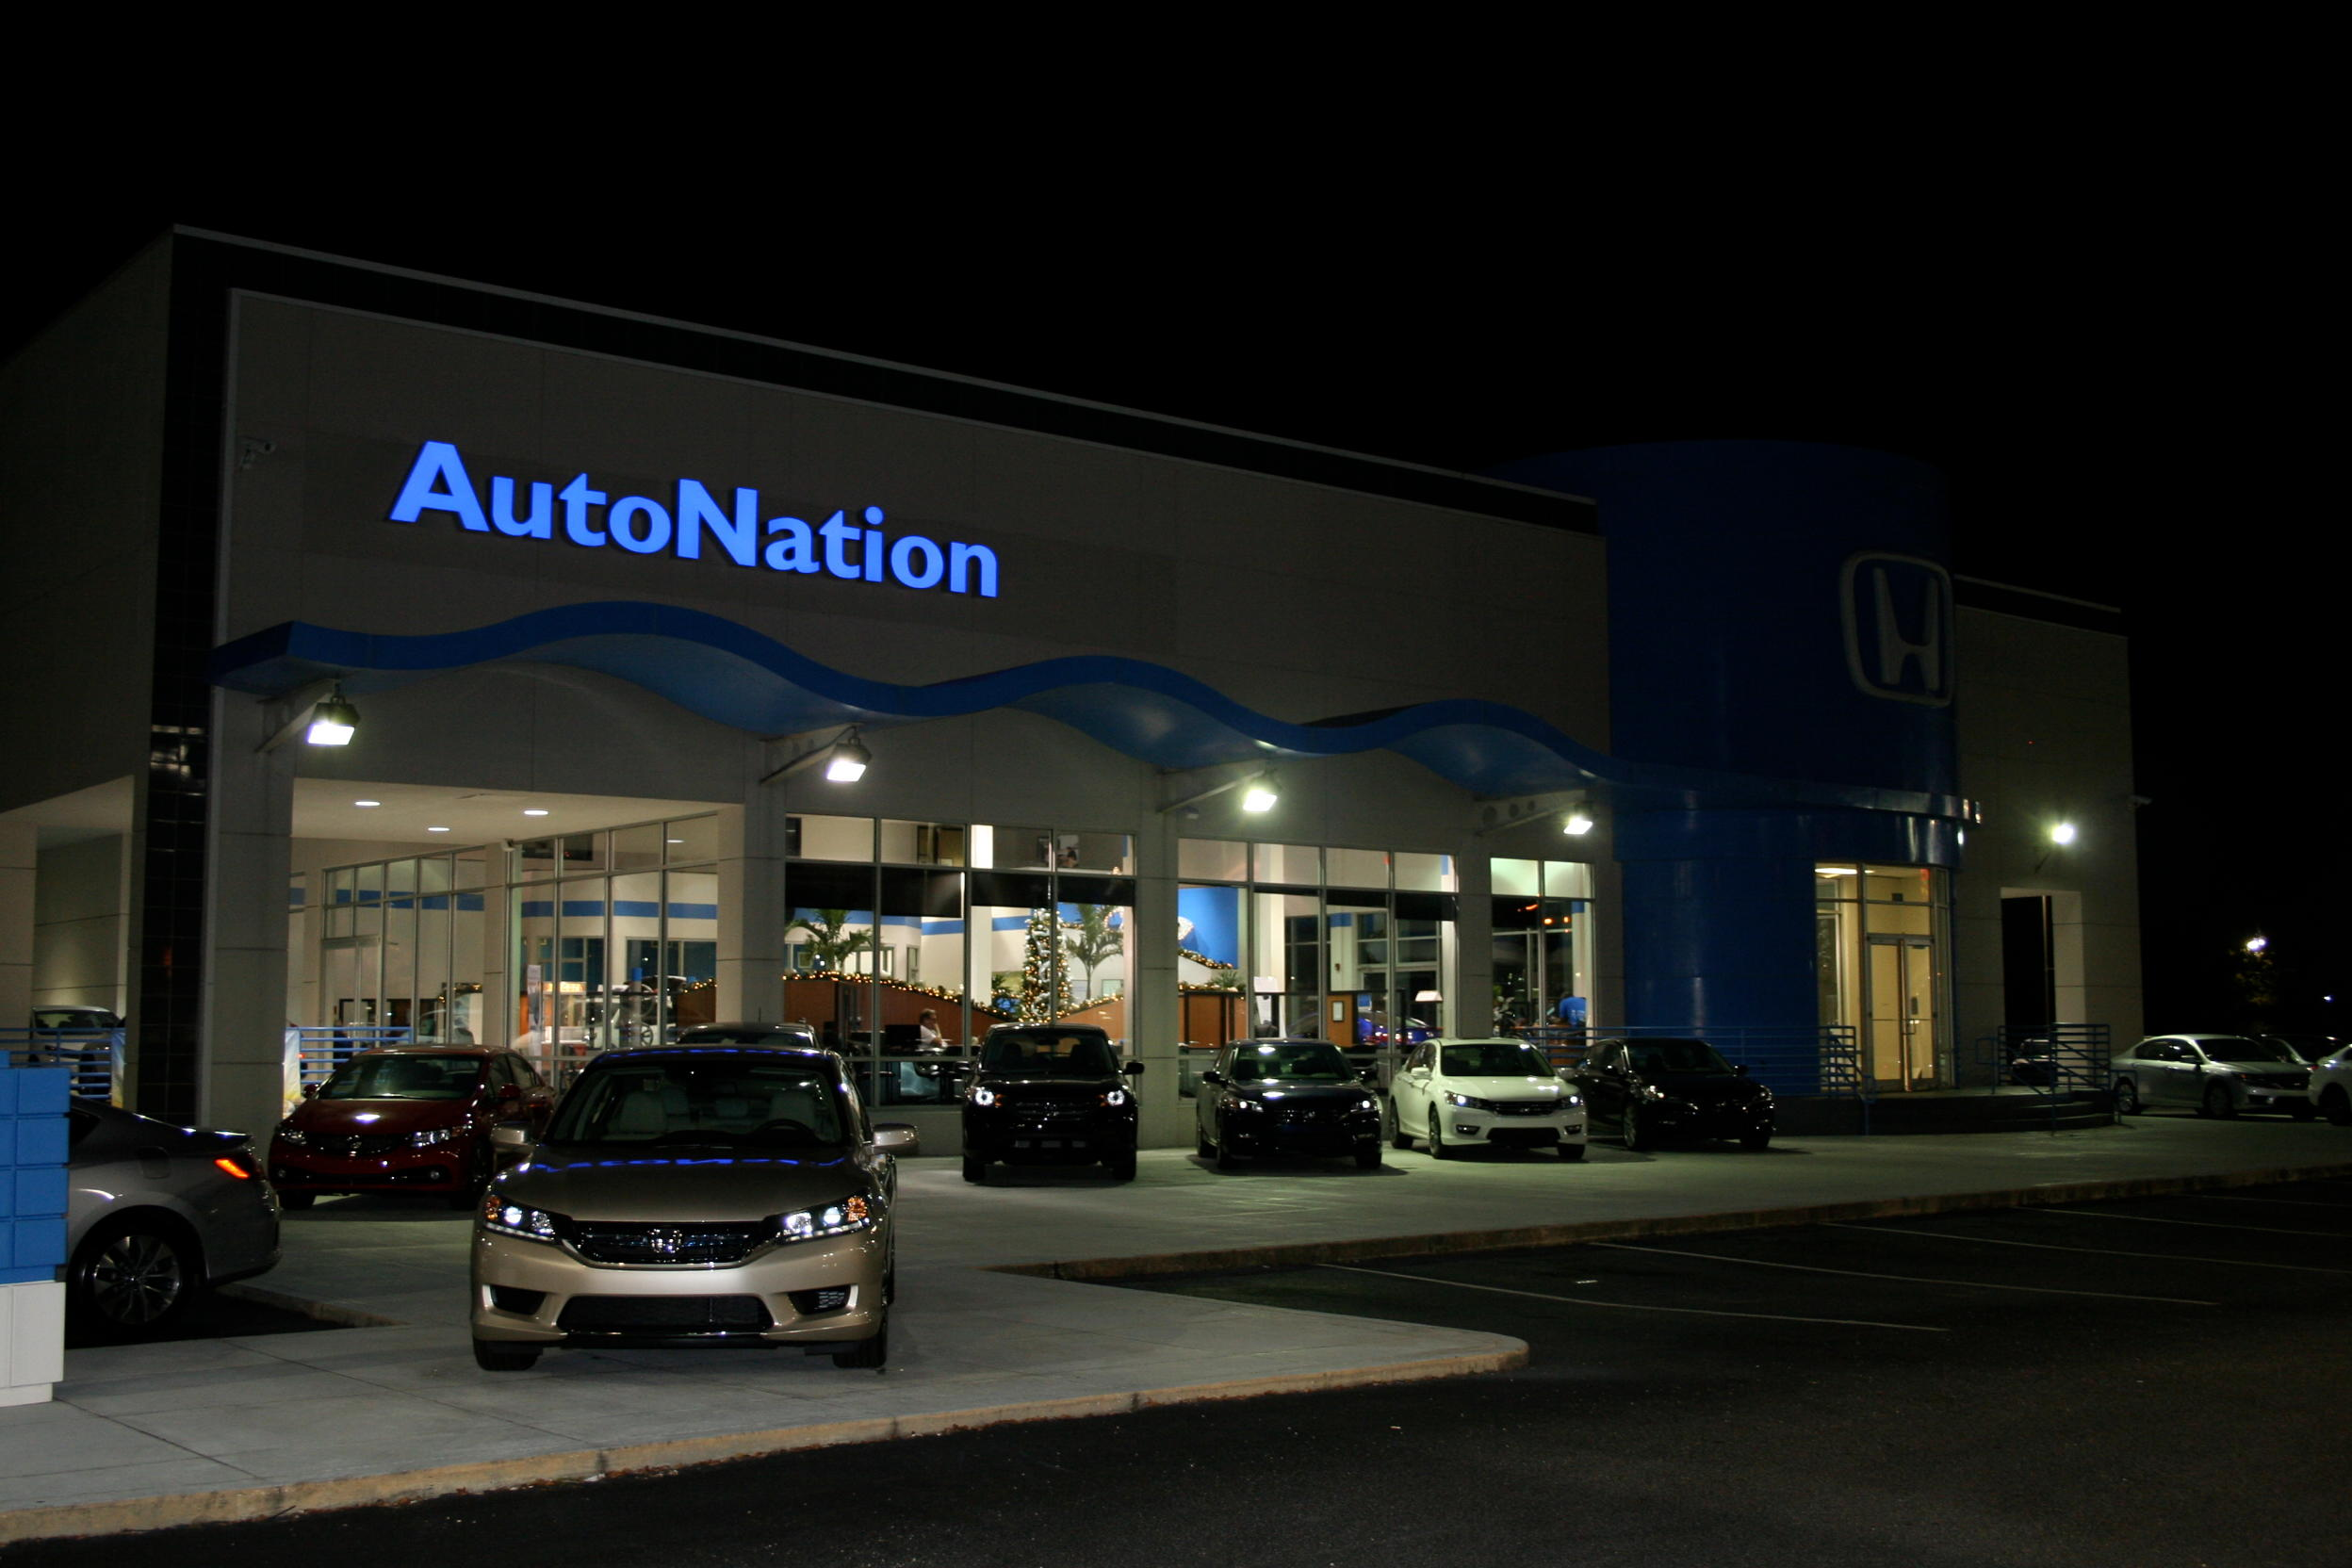 Used Honda Pilot For Sale Near Me >> AutoNation Honda at Bel Air Mall Coupons near me in Mobile ...